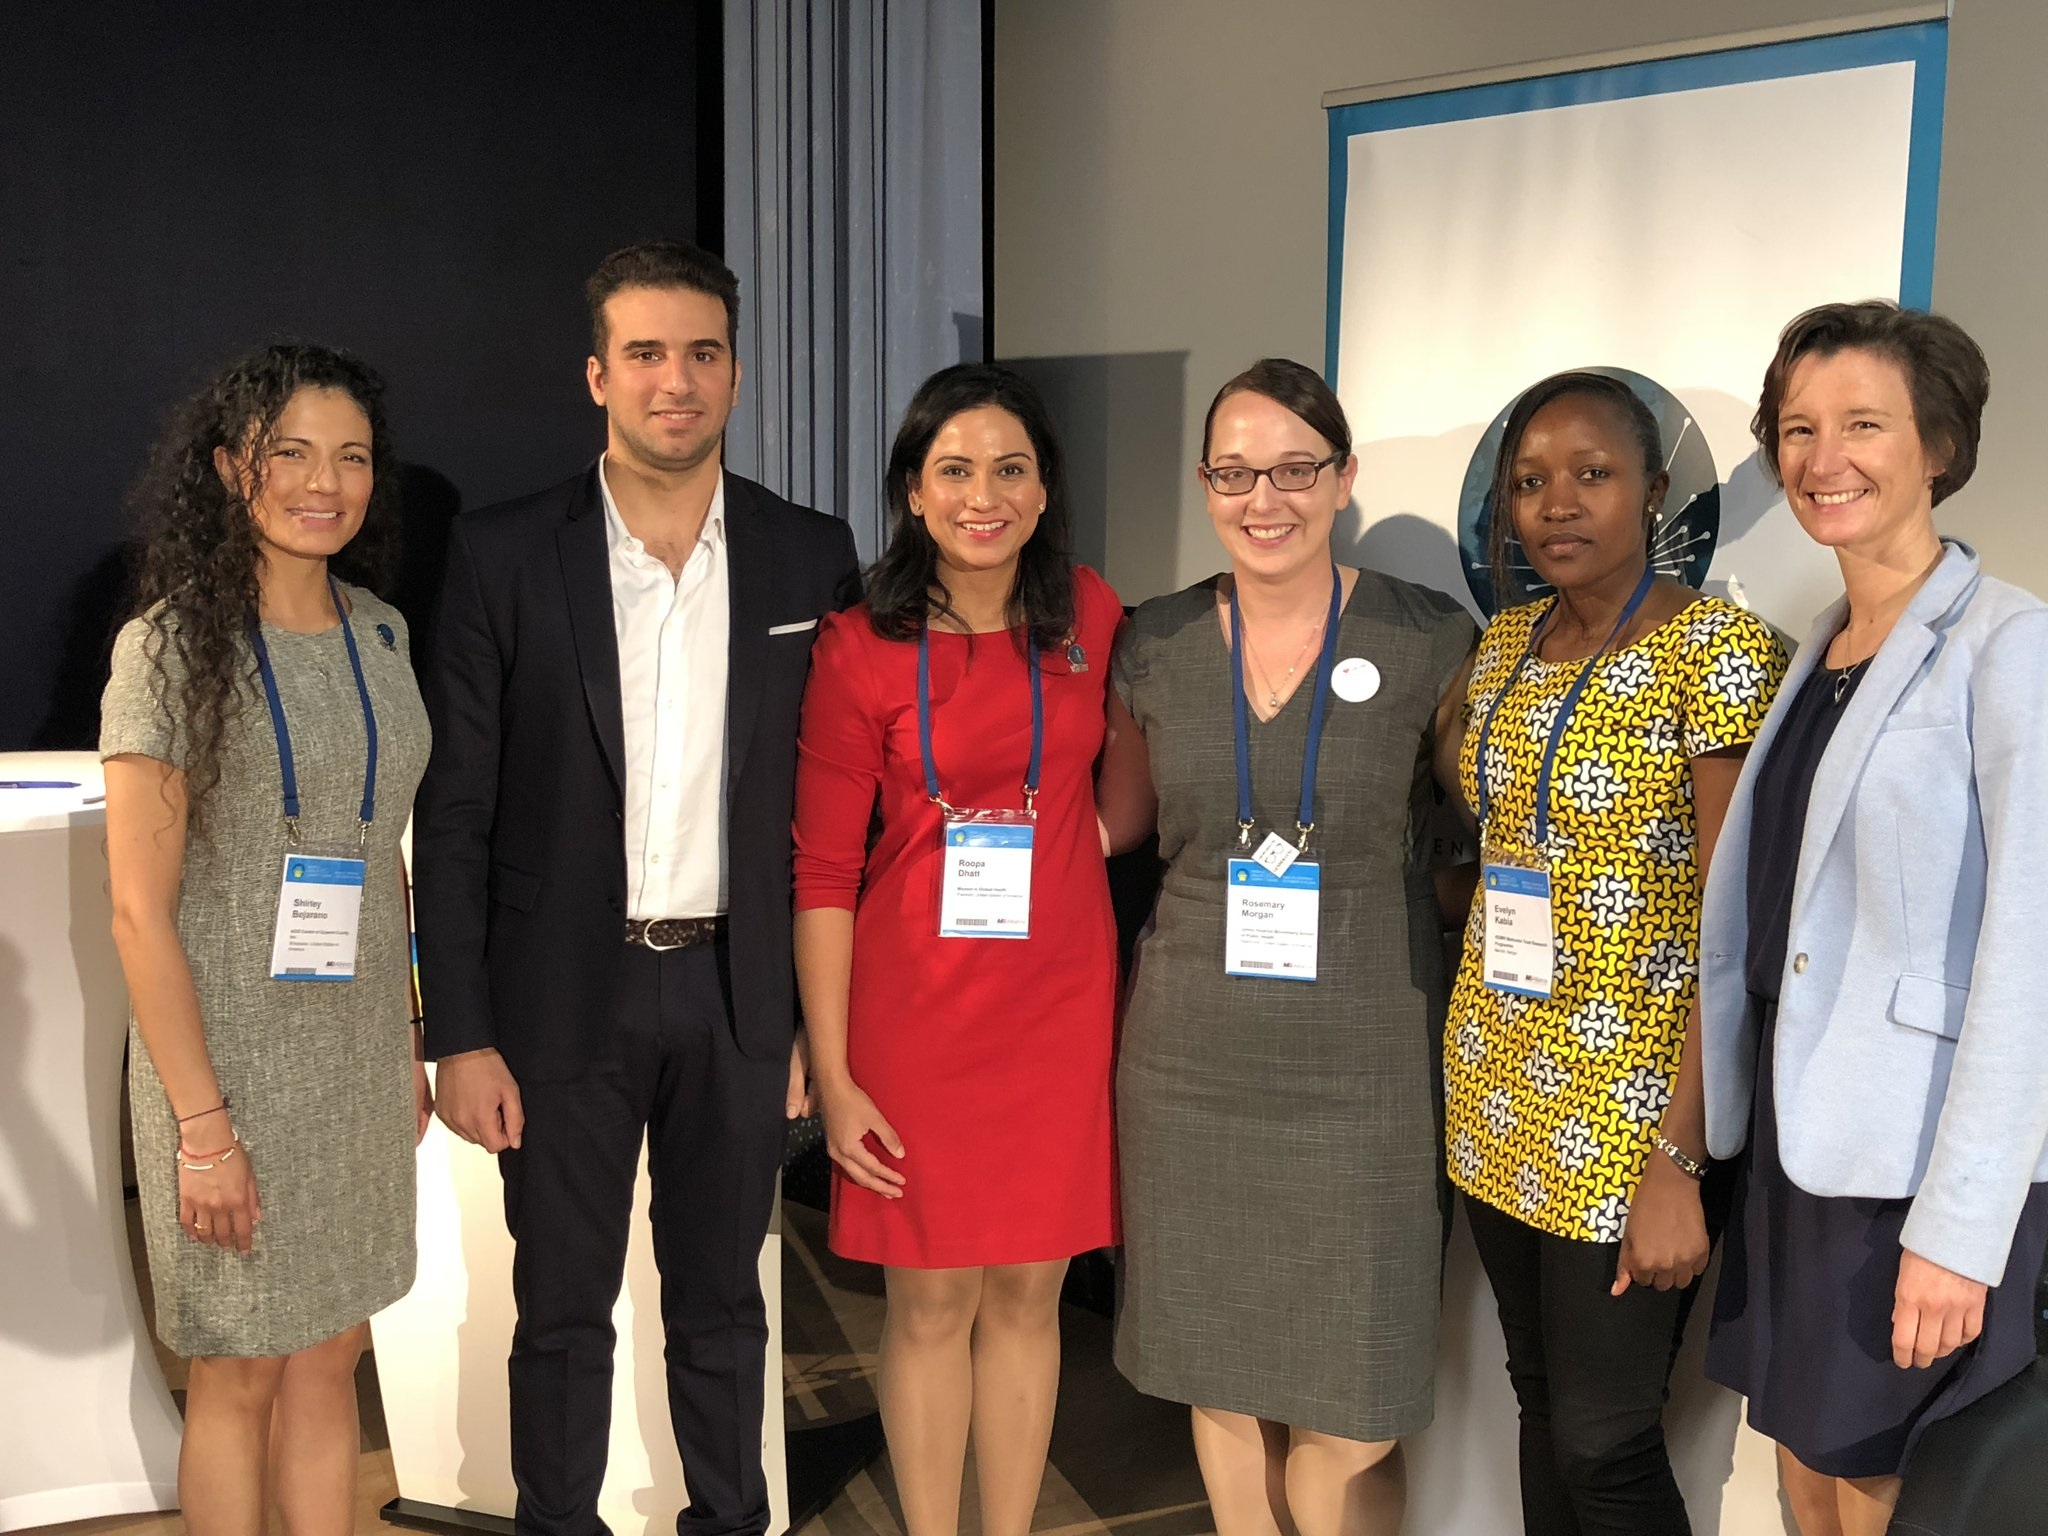 SEEK Managing Director Christina Schrade with other panelists following a panel at the World Health Summit hosted by Women in Global Health.